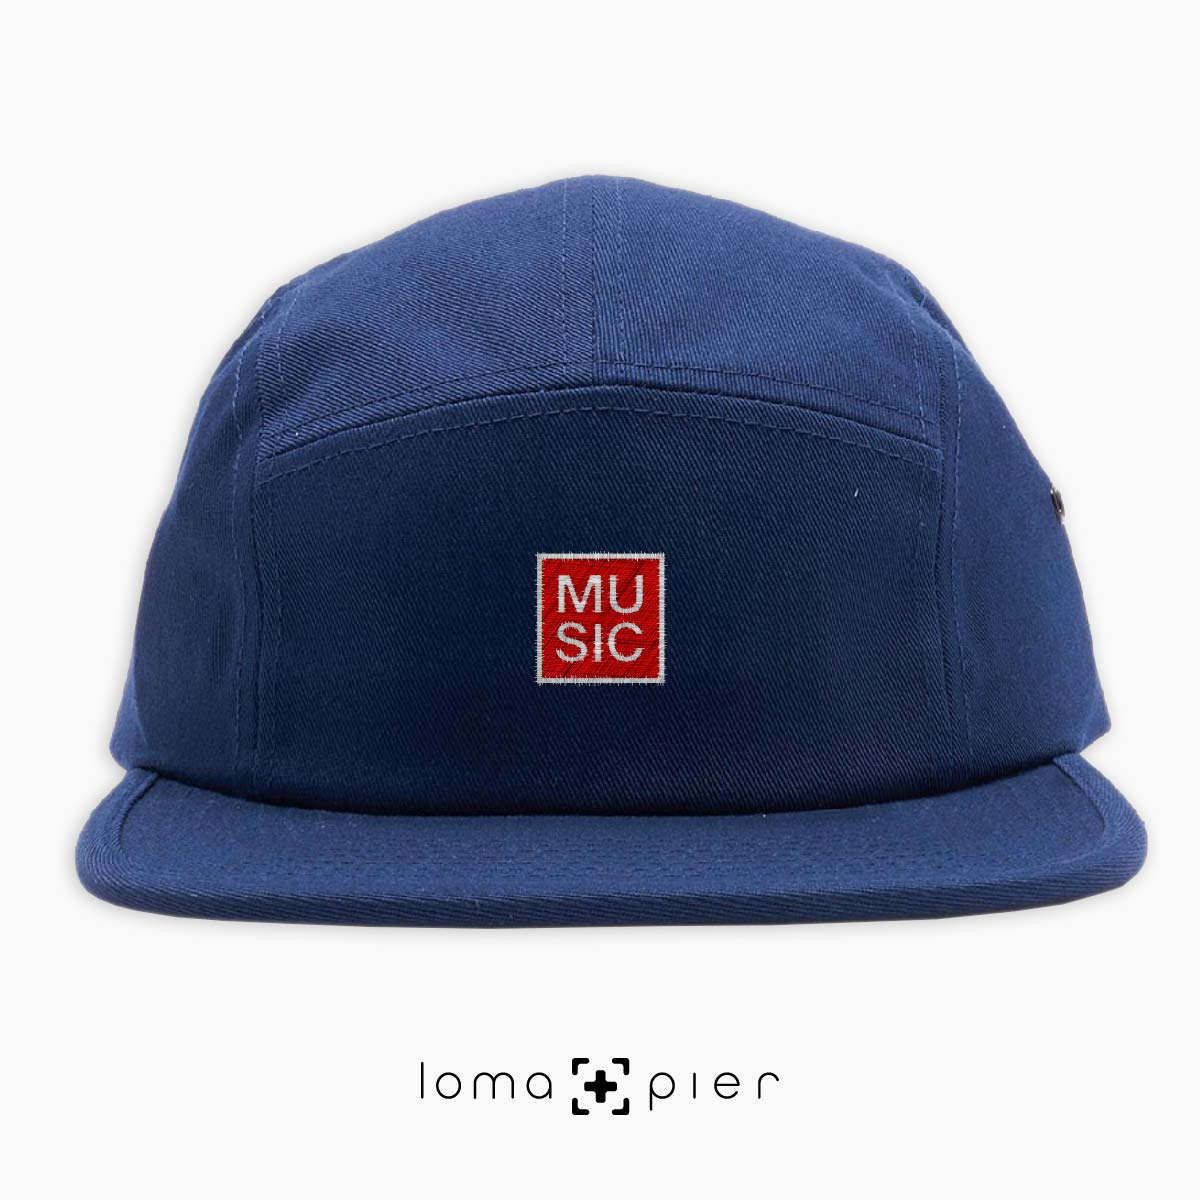 MUSIC BOX cotton 5-panel hat in navy by loma+pier hat store